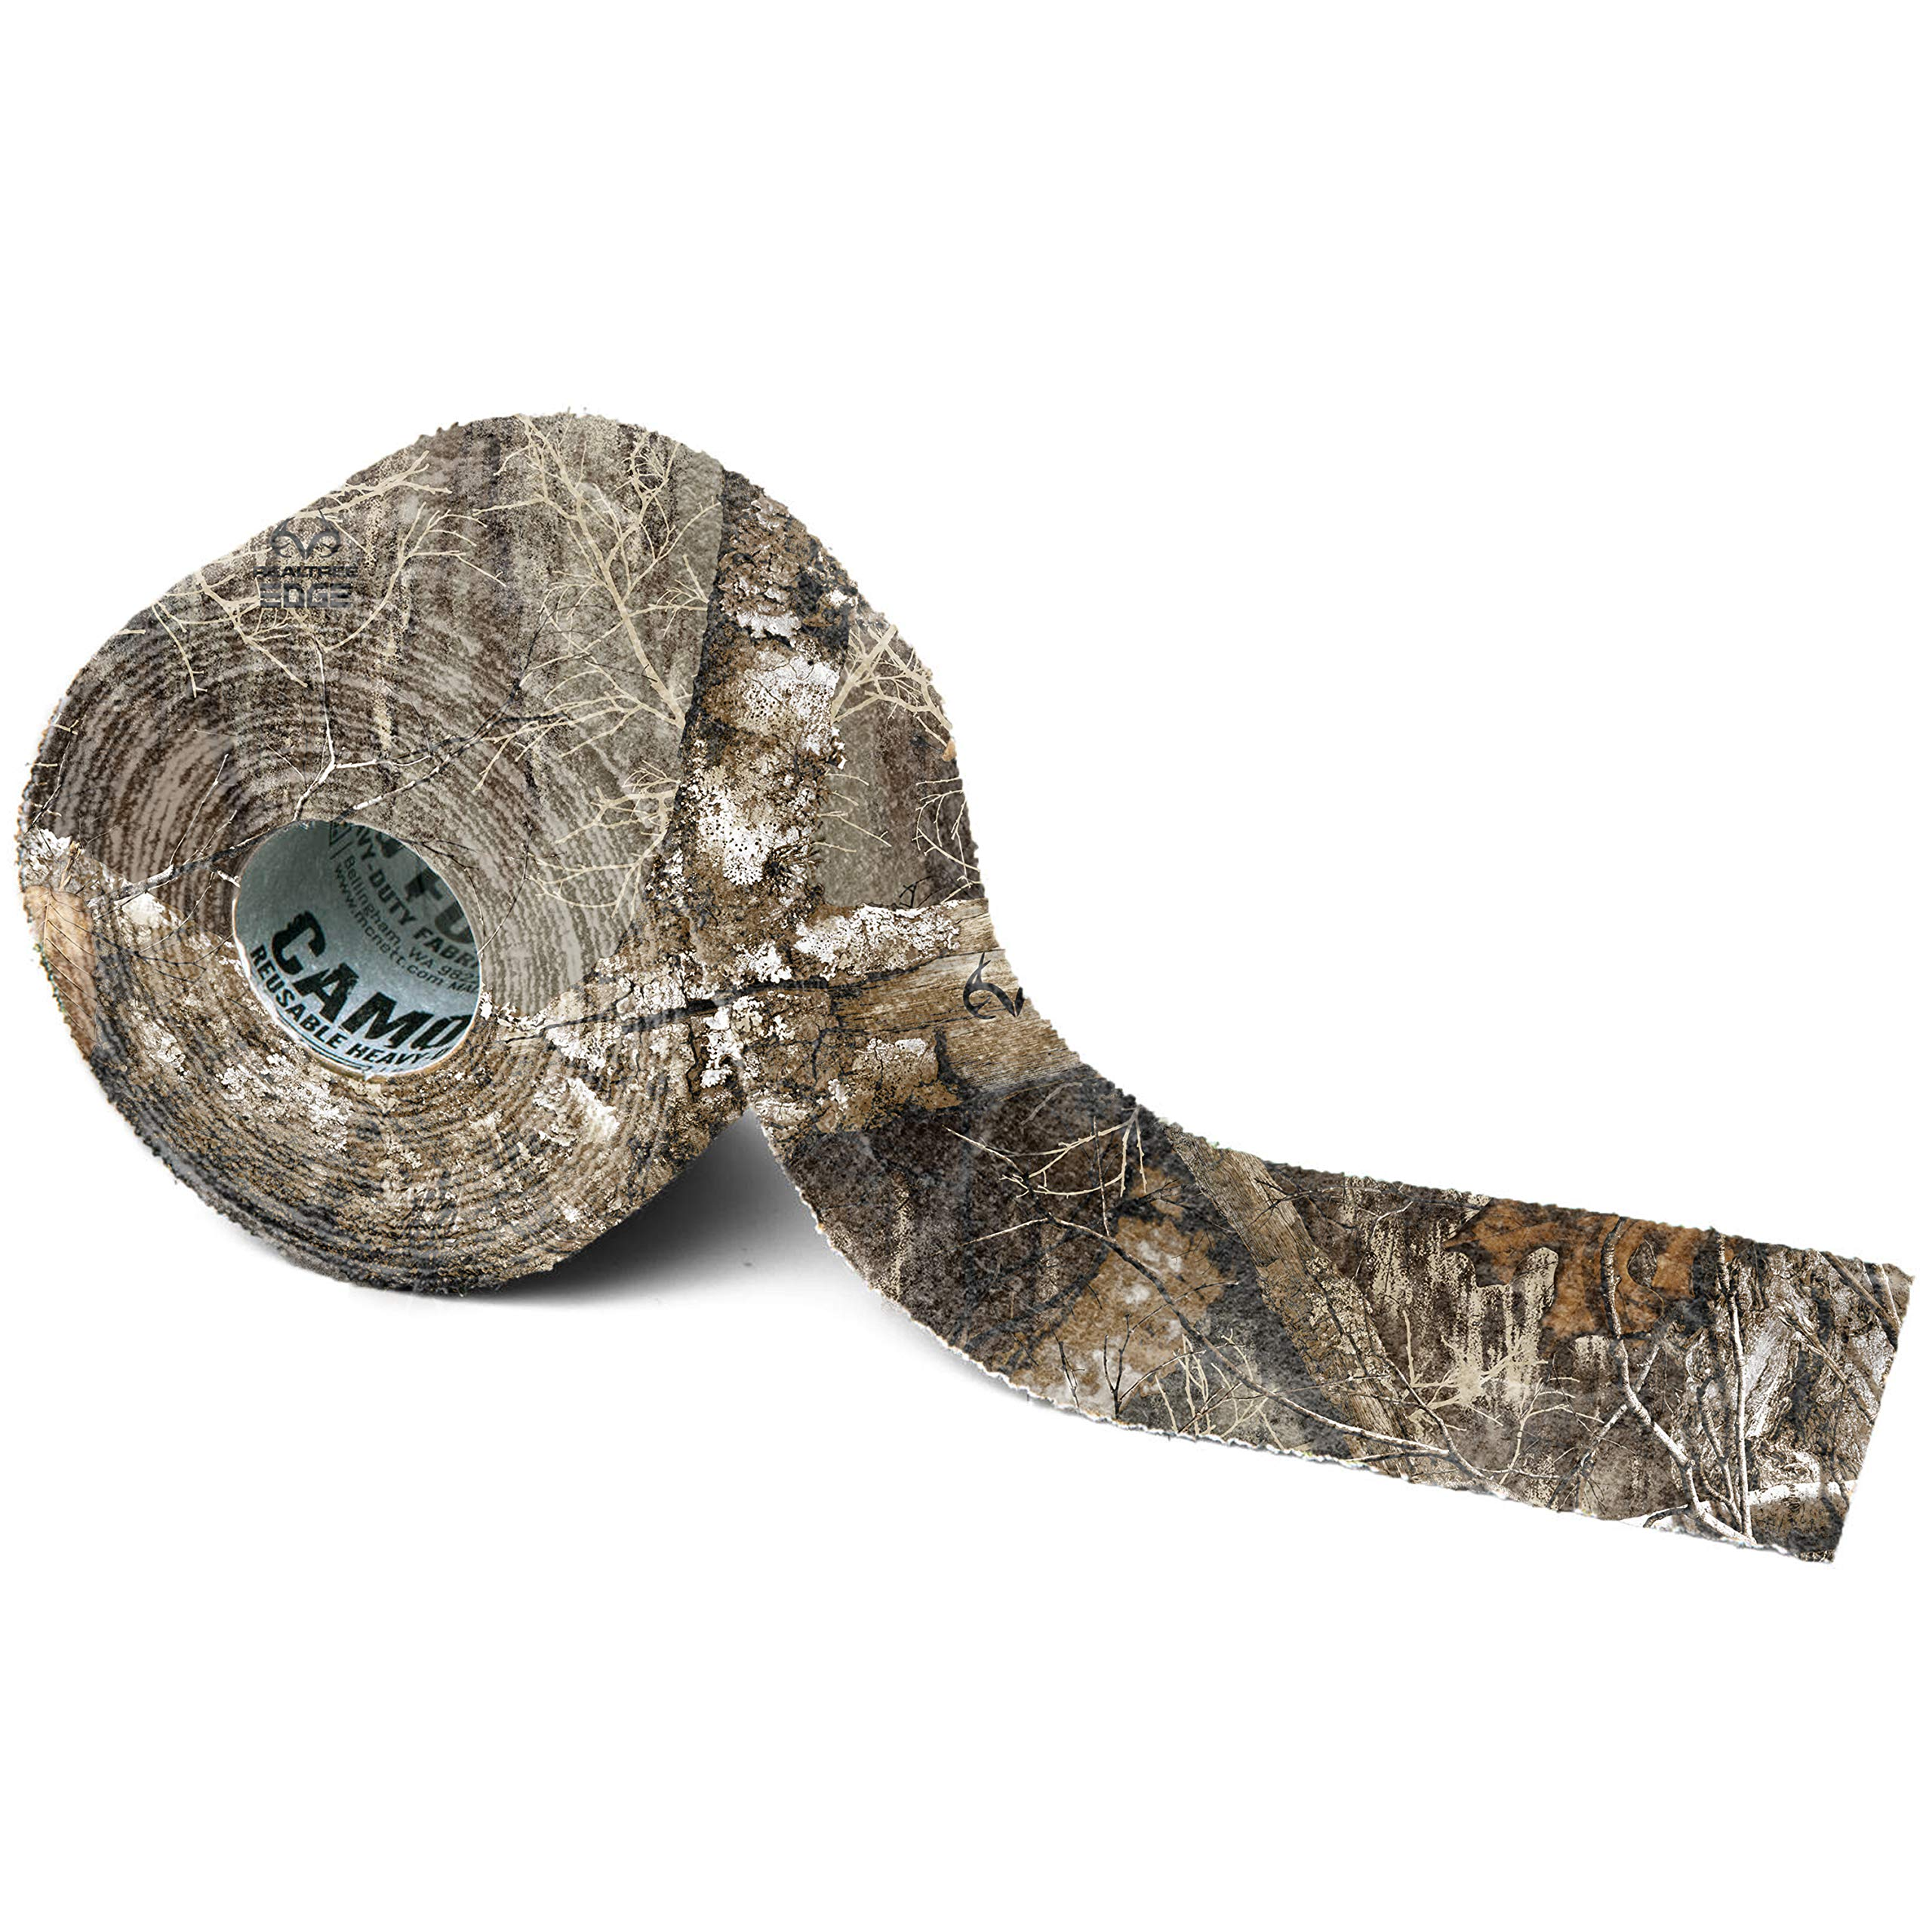 GEAR AID Camo Form Self-Cling and Reusable Camouflage Wrap, Realtree Edge, 2'' x 144'' Roll by GEAR AID